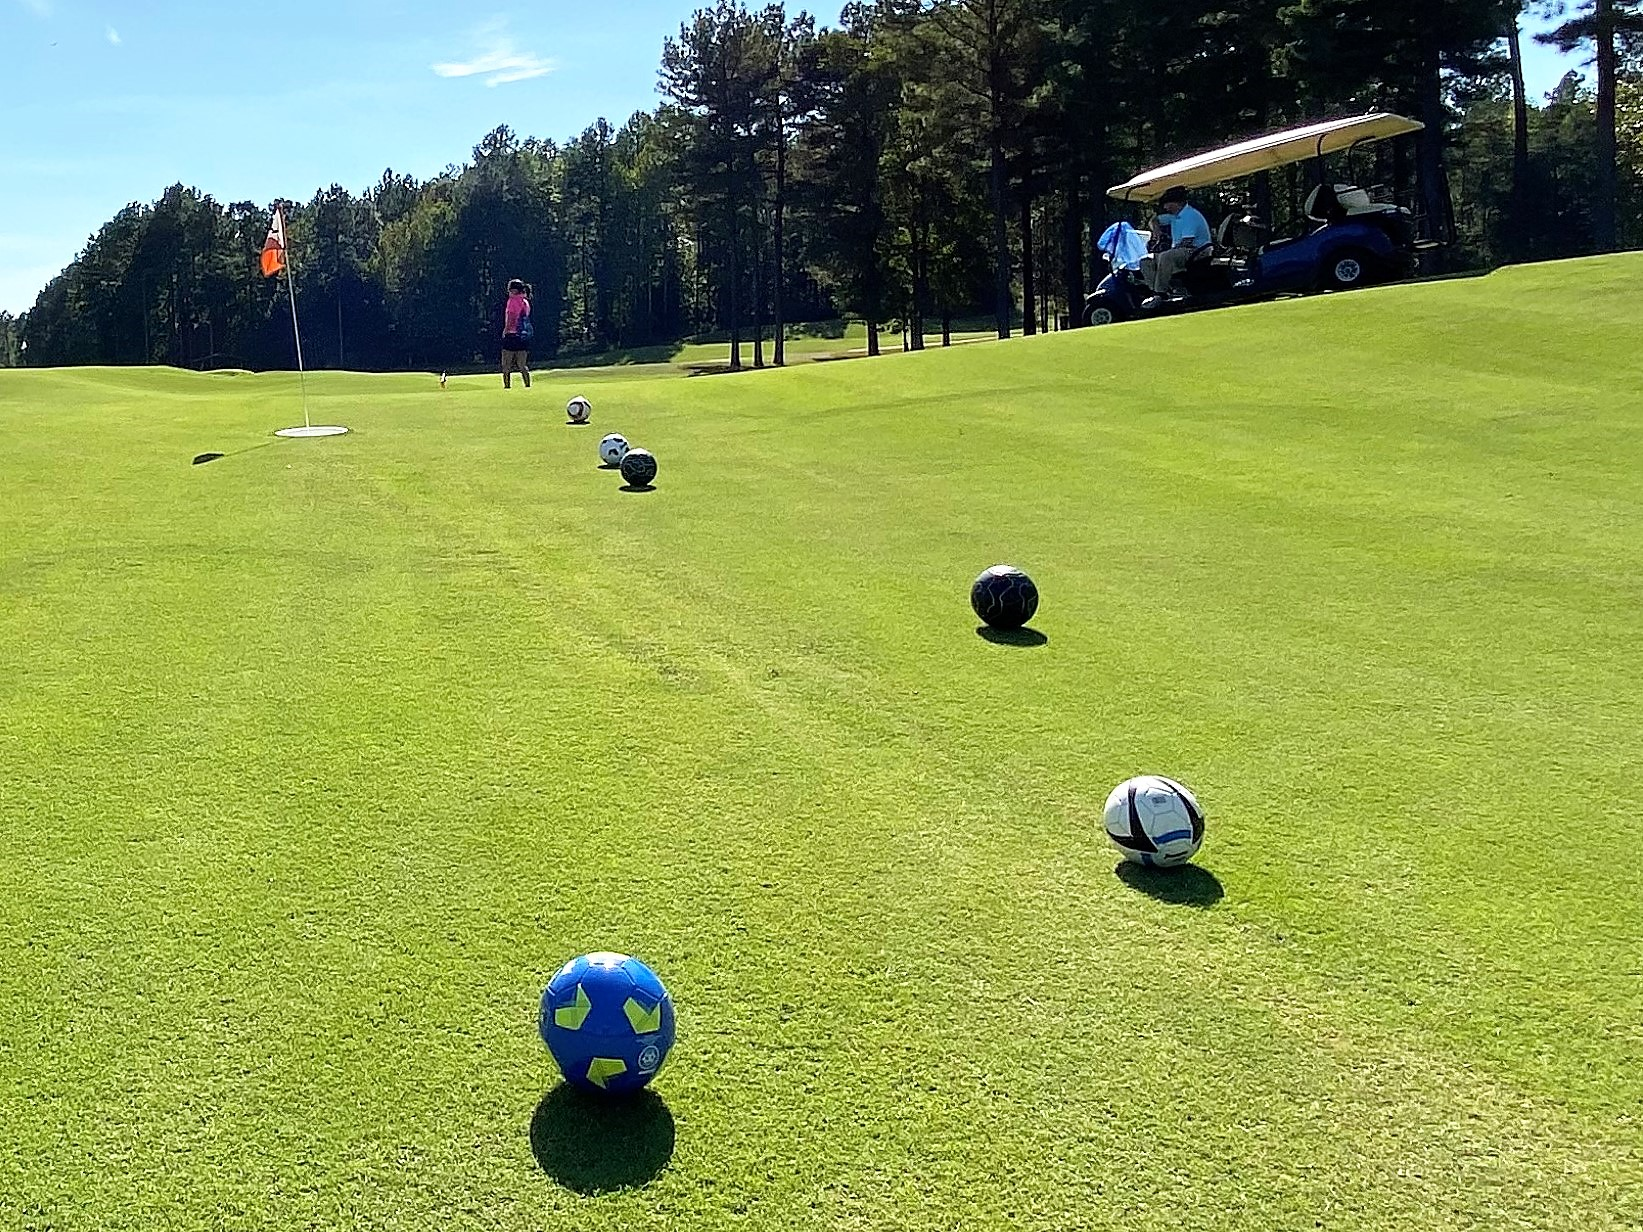 Foot Golf at Independence Golf Club in Midlothian VA